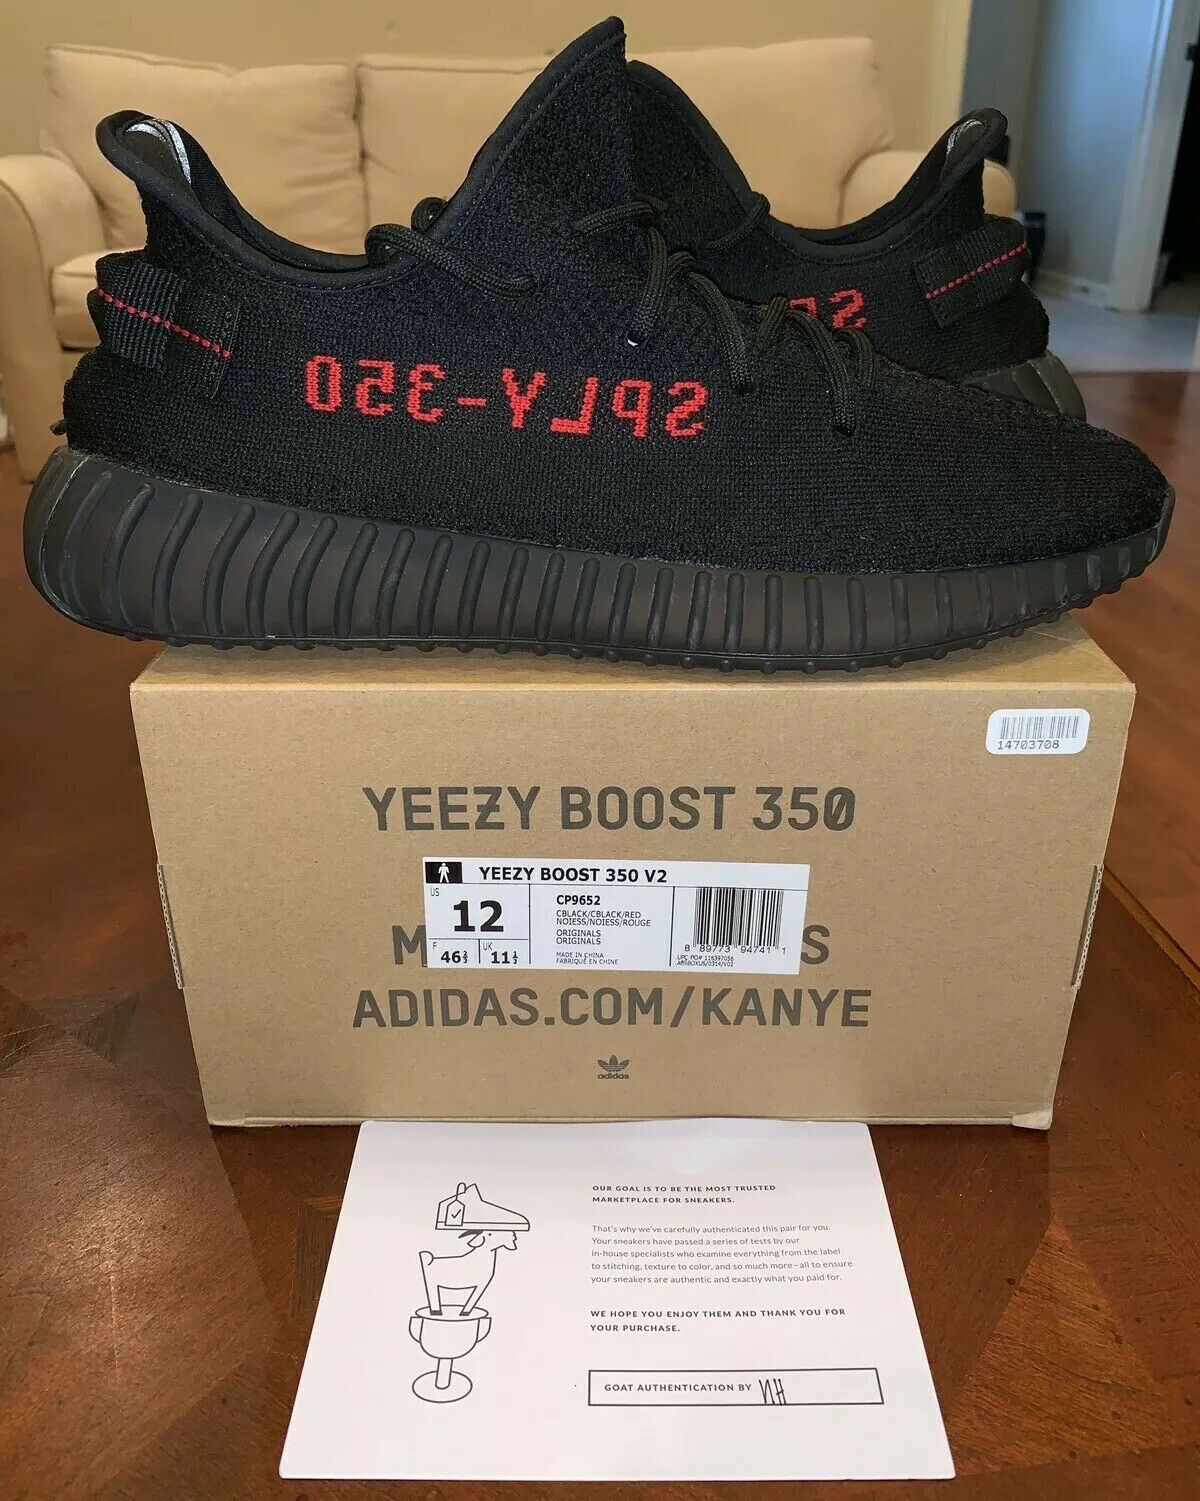 separation shoes 0ec9f d043b Adidas Yeezy Yeezy Yeezy Boost 350 V2 Black Red Bred 12 Kanye West Core  Static Pirate